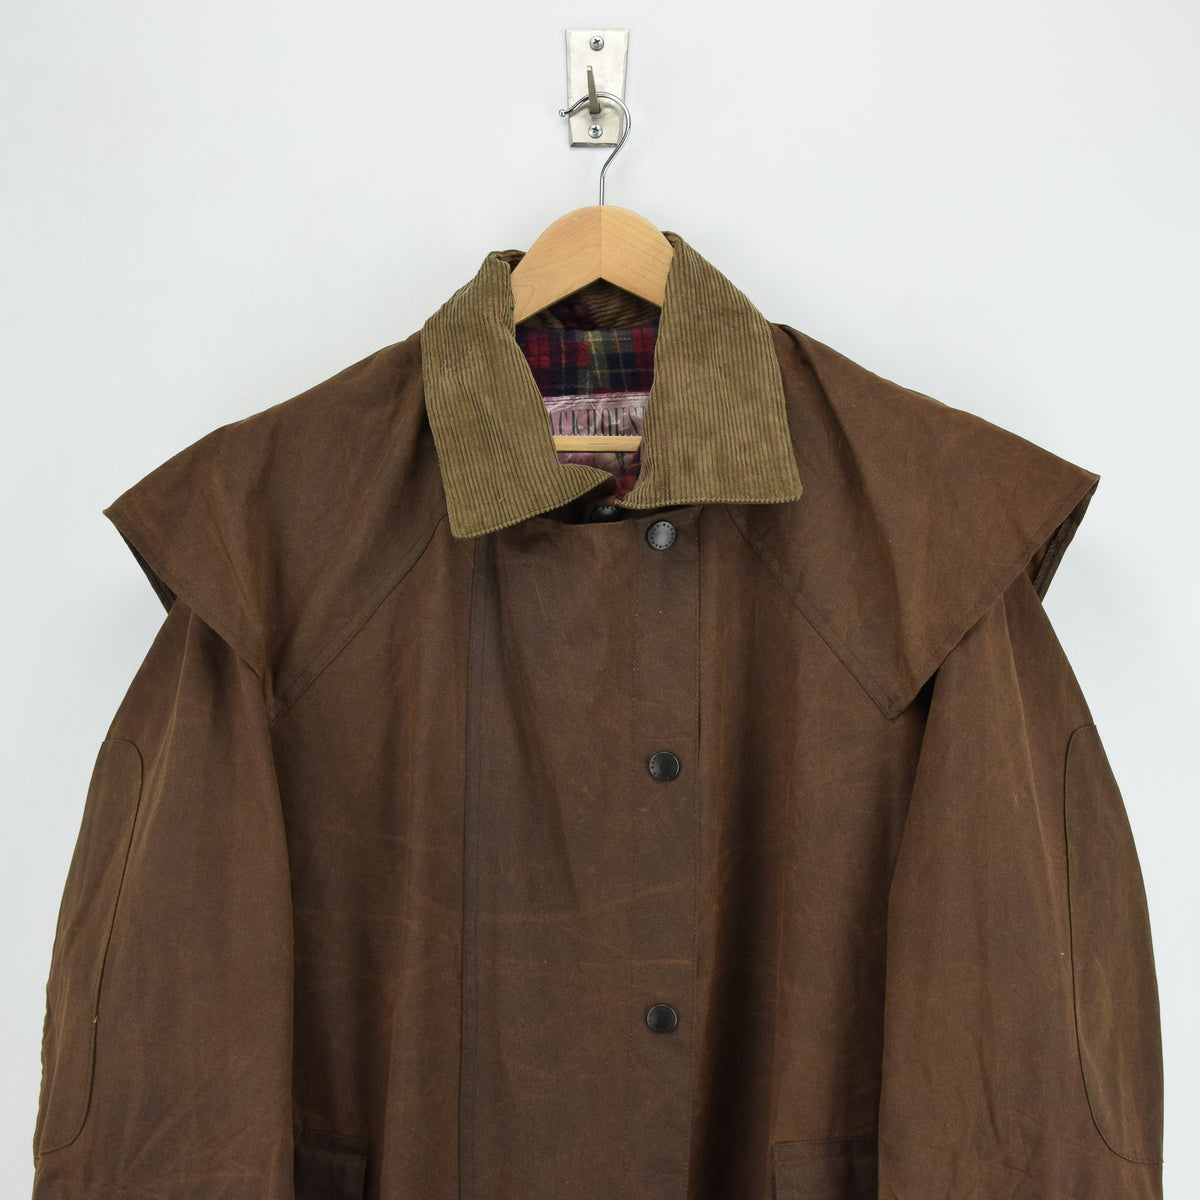 Vintage Backhouse Brown A1250 Stockman's Coat Wax Cotton Riding Jacket S chest